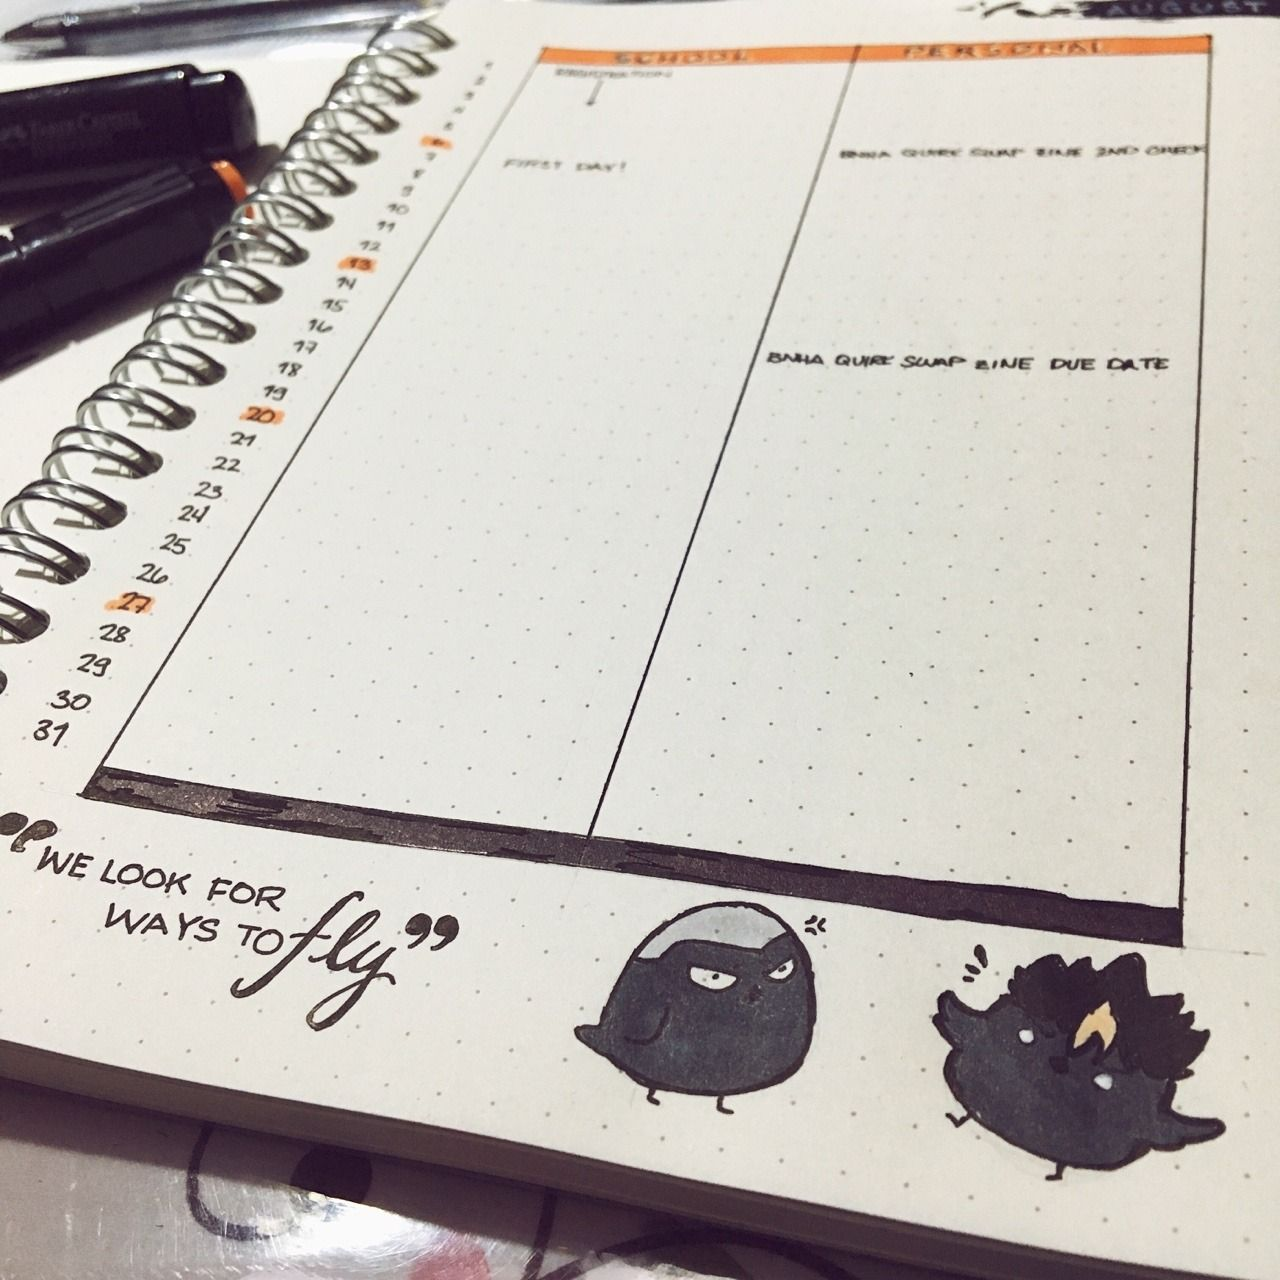 Shabbylines I Made My August Haikyuu Themed For My Journal Bullet Journal Books Bullet Journal Themes Sketchbook Journaling